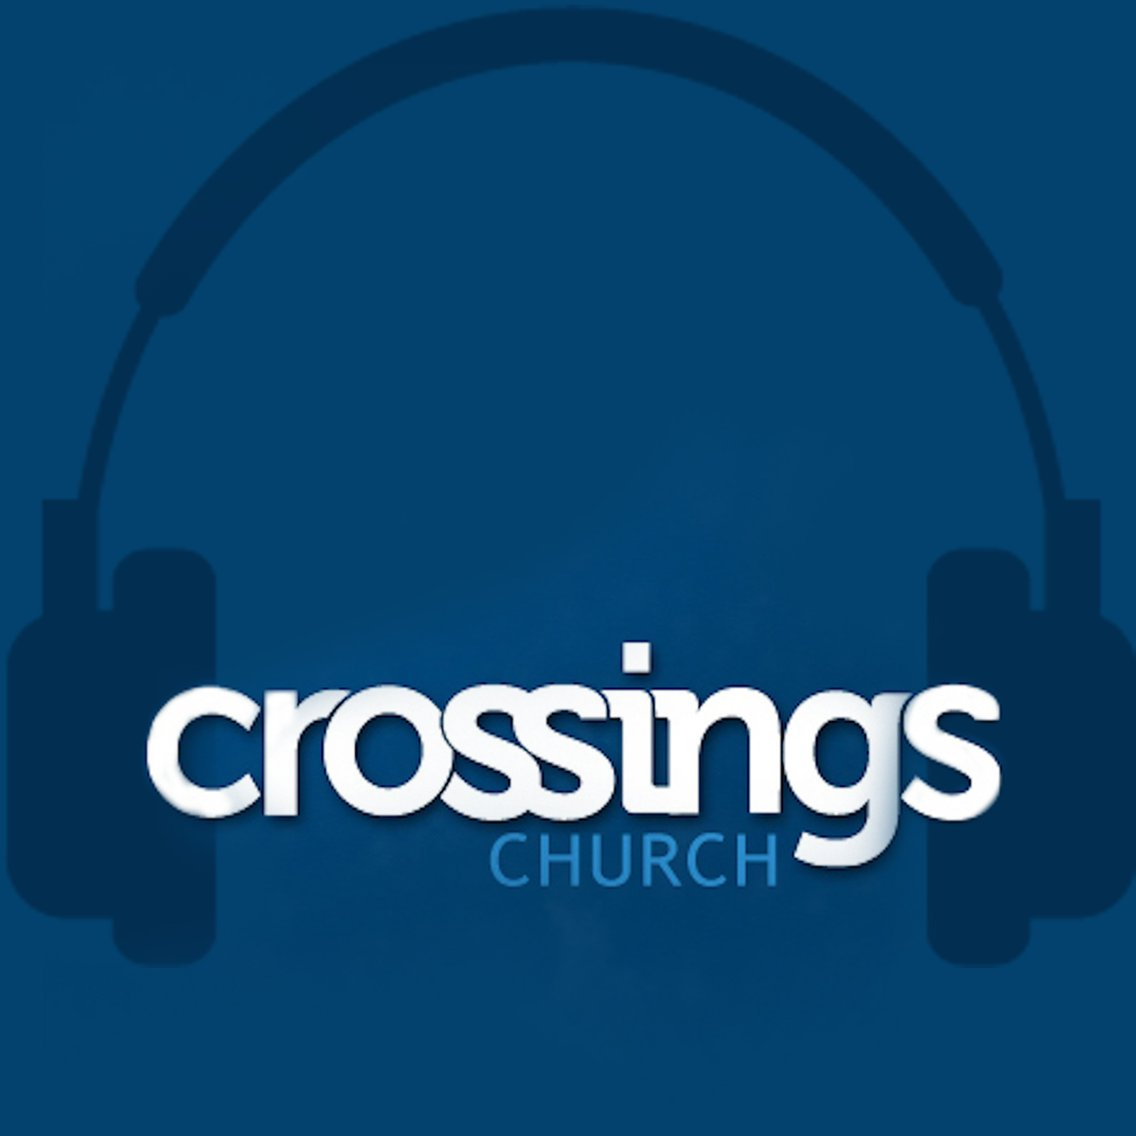 Crossings Church Podcast - imagen de portada